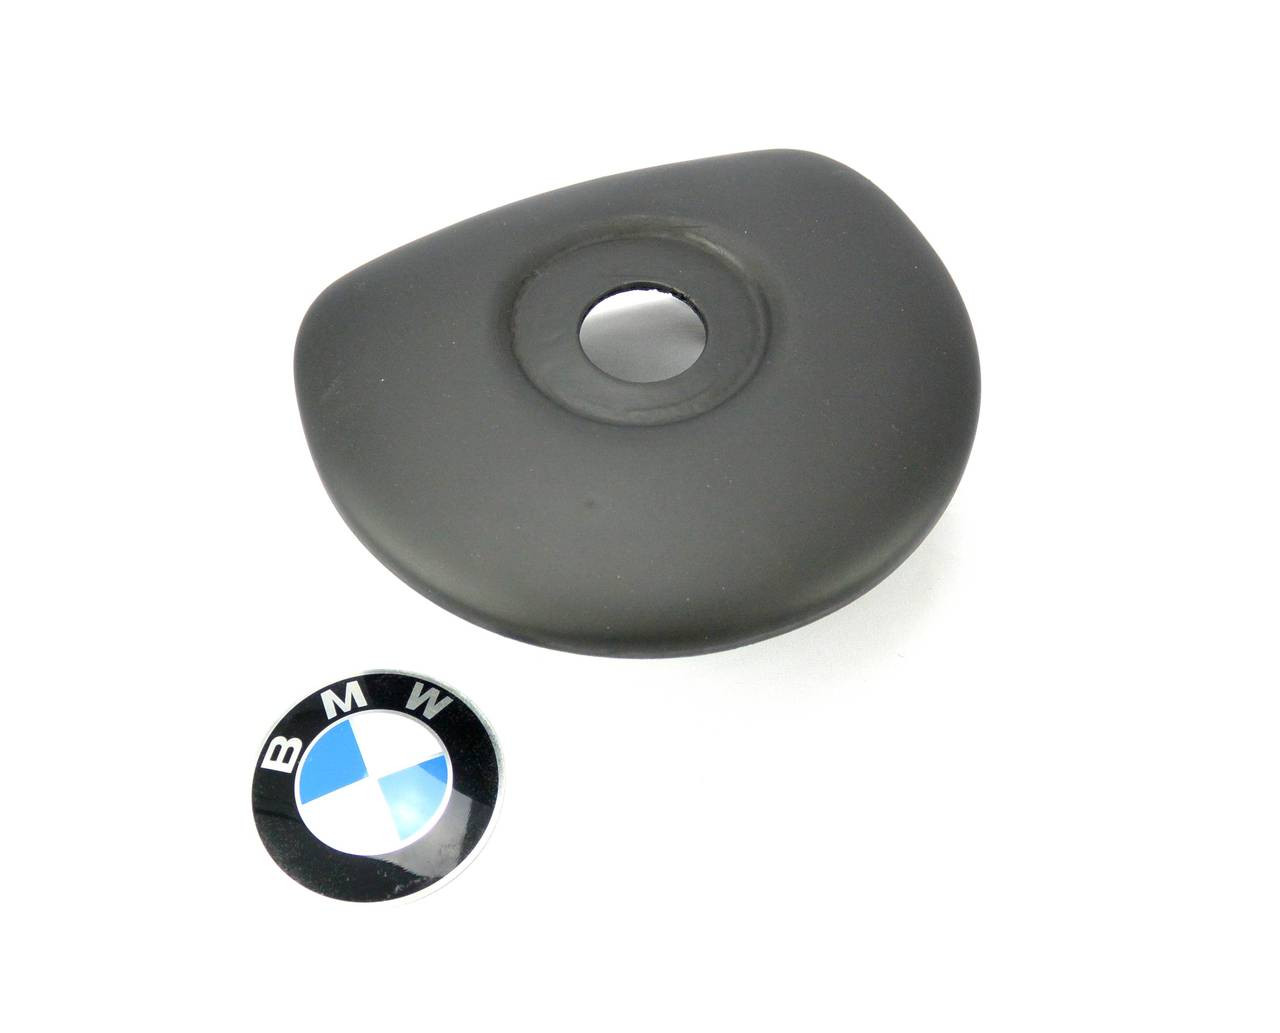 SRS Airbag Delete for BMW E9X Steering wheel. Steering Shaft Bolt access hidden under roundel. Roundel included with purchase.